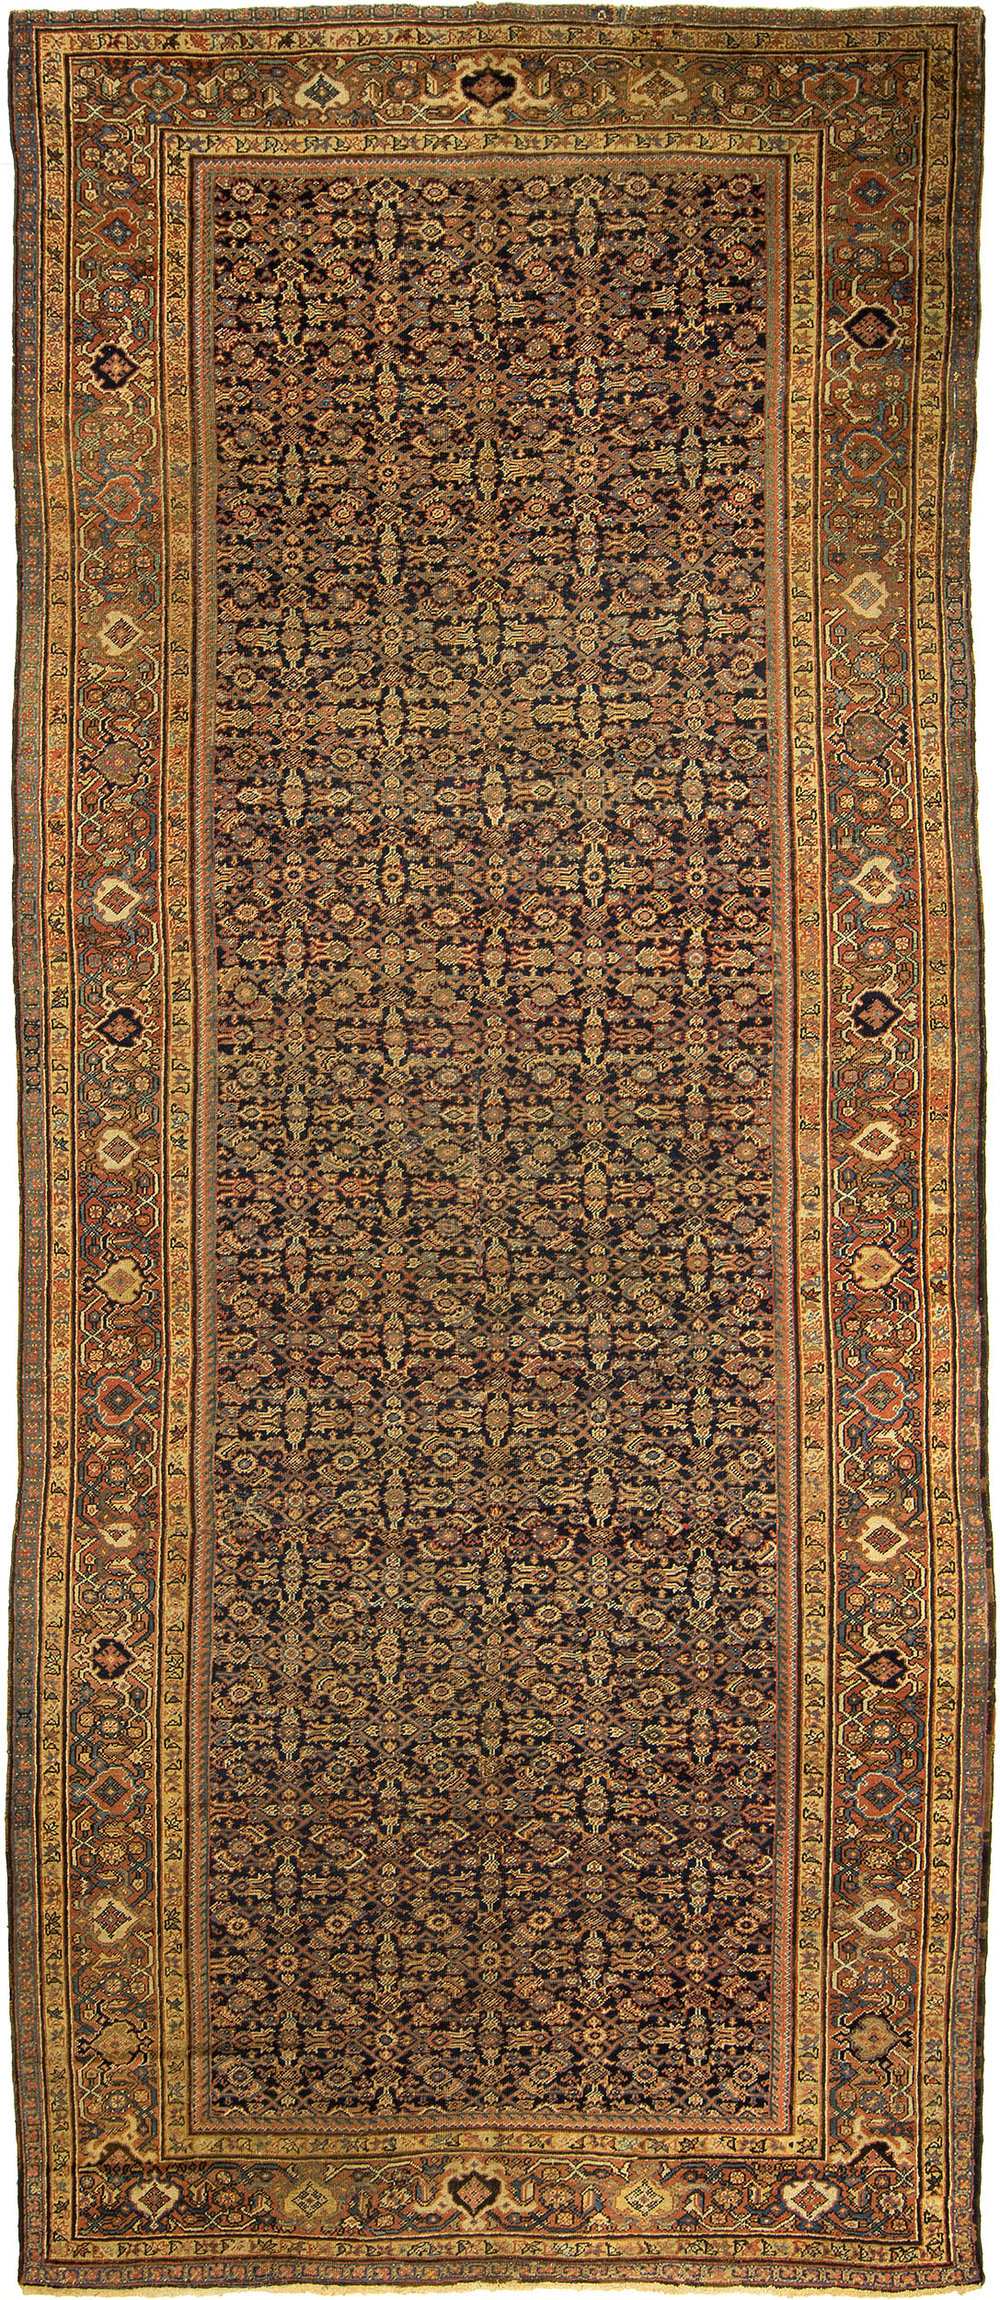 "Fereghan Gallery Carpet 17' 0"" x 7' 2"""